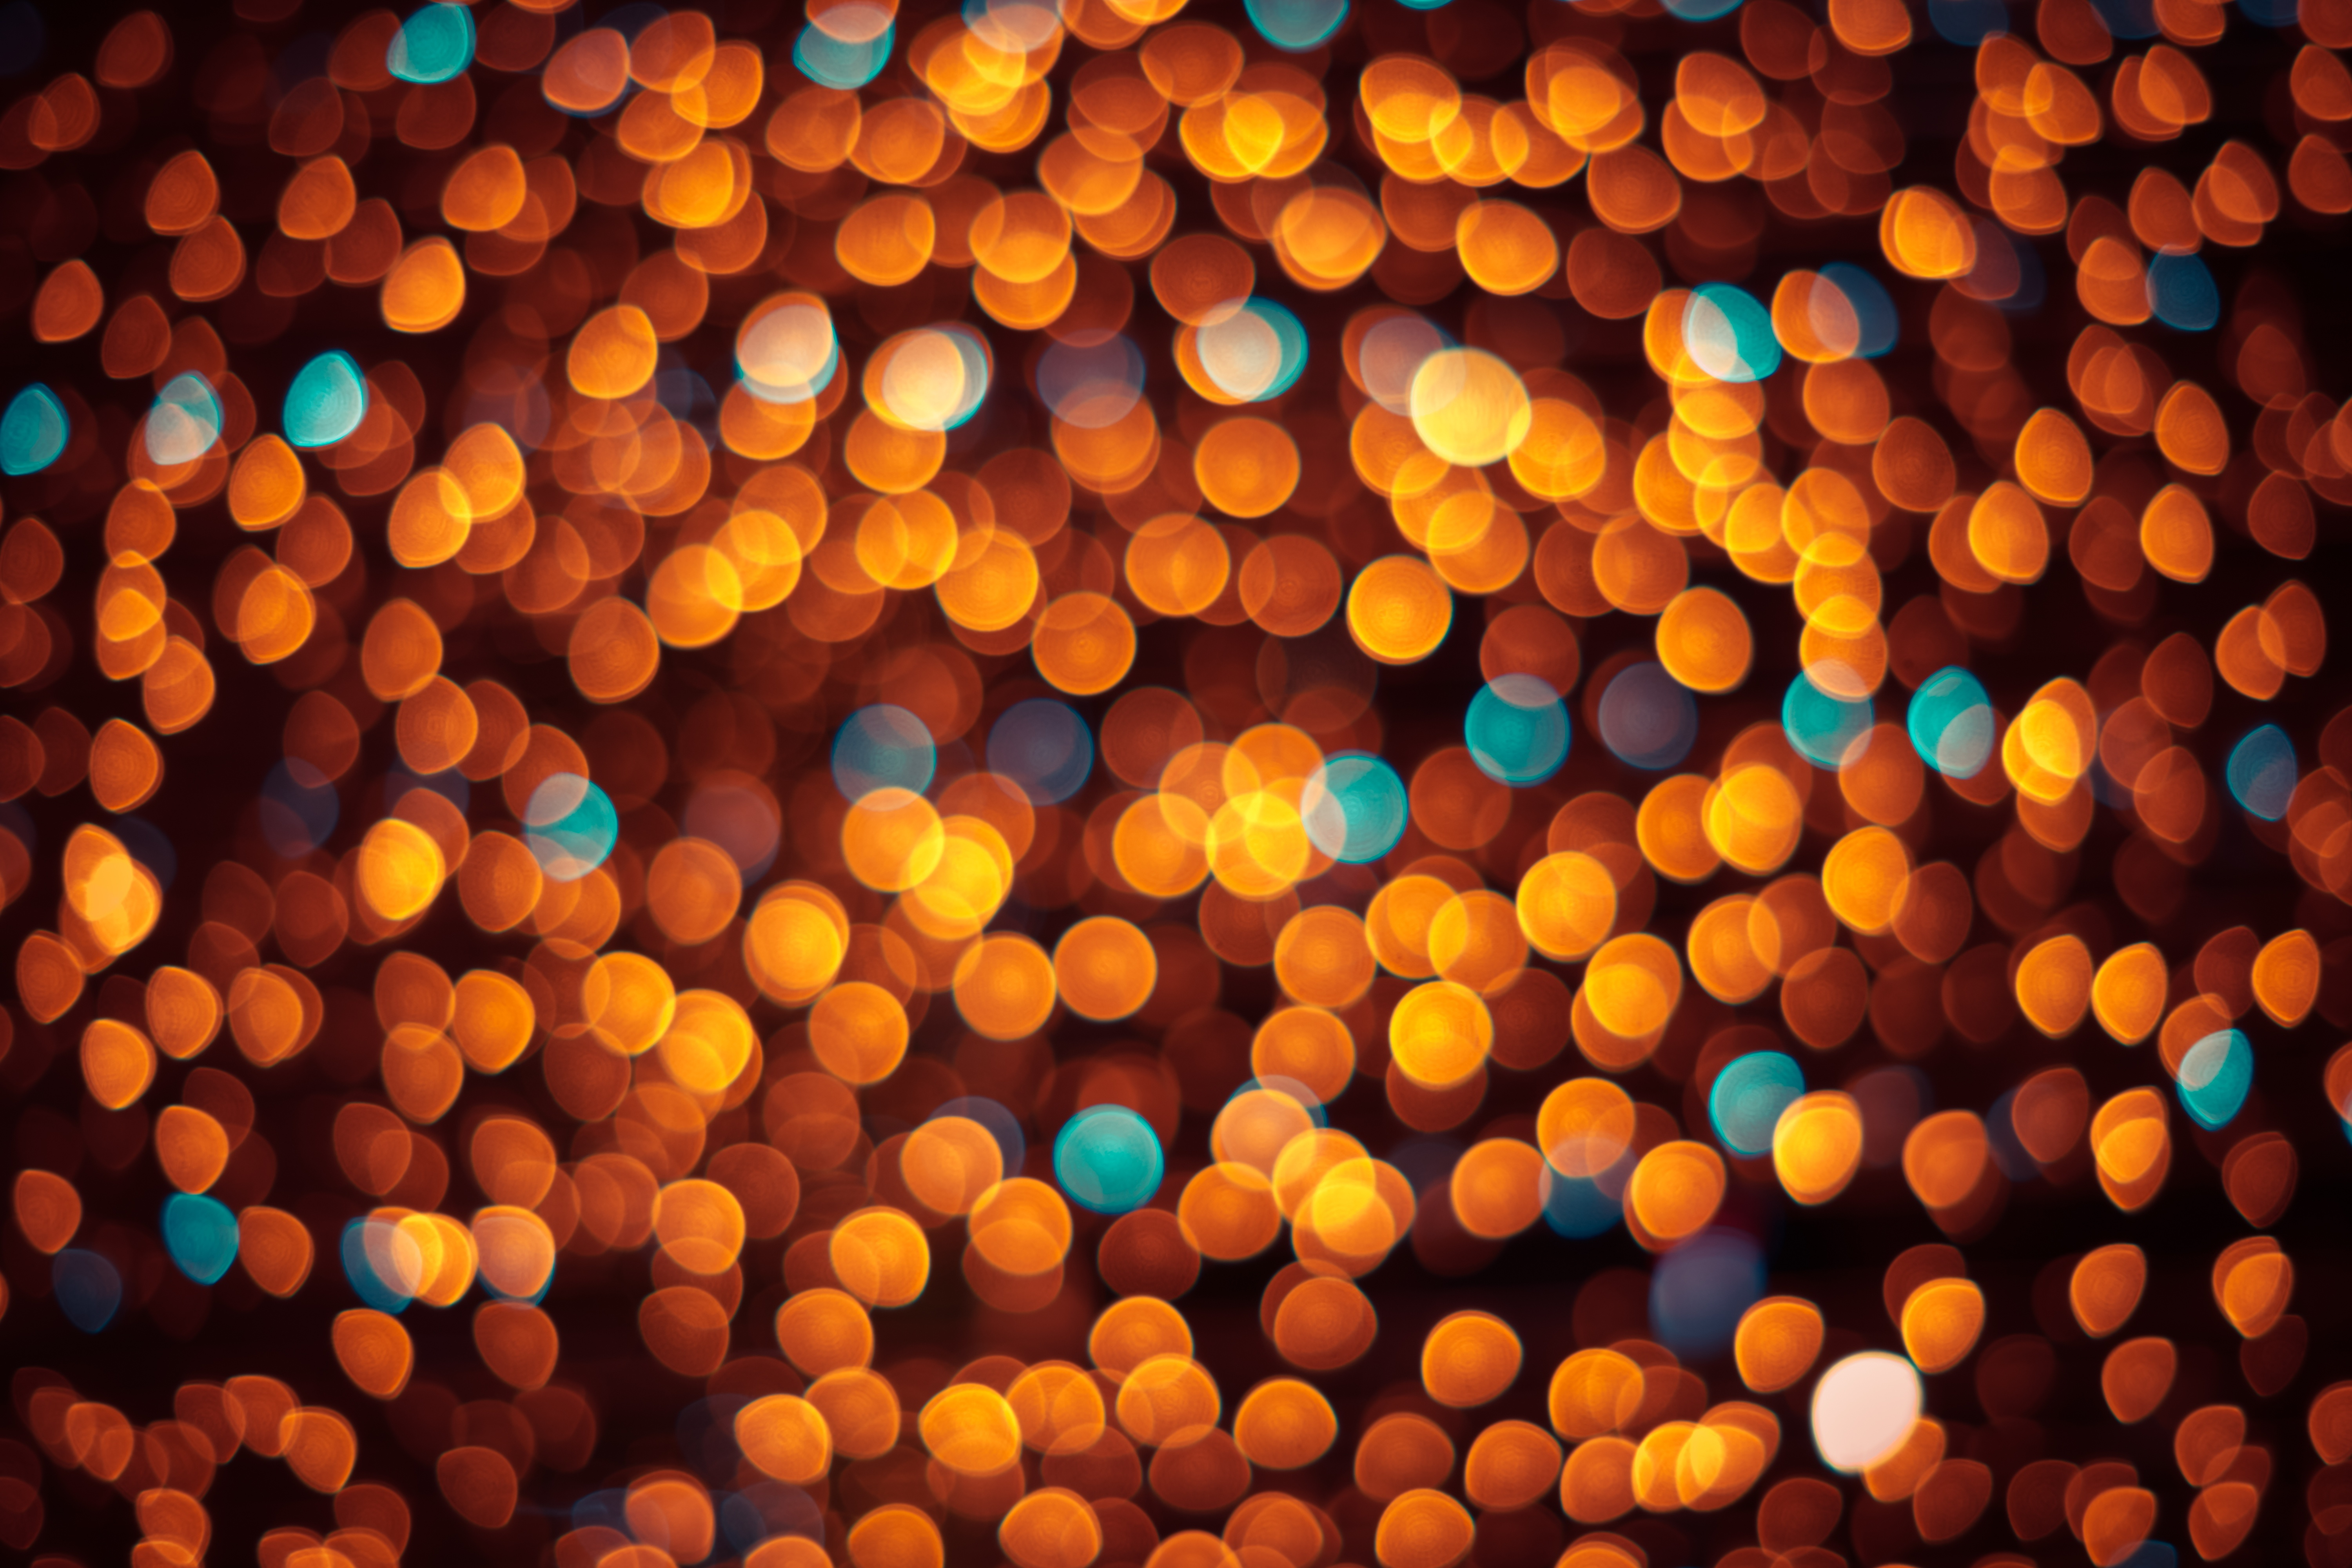 3840x2160 bokeh 5k 4k hd 4k wallpapers images backgrounds photos and pictures - Background images 4k hd ...